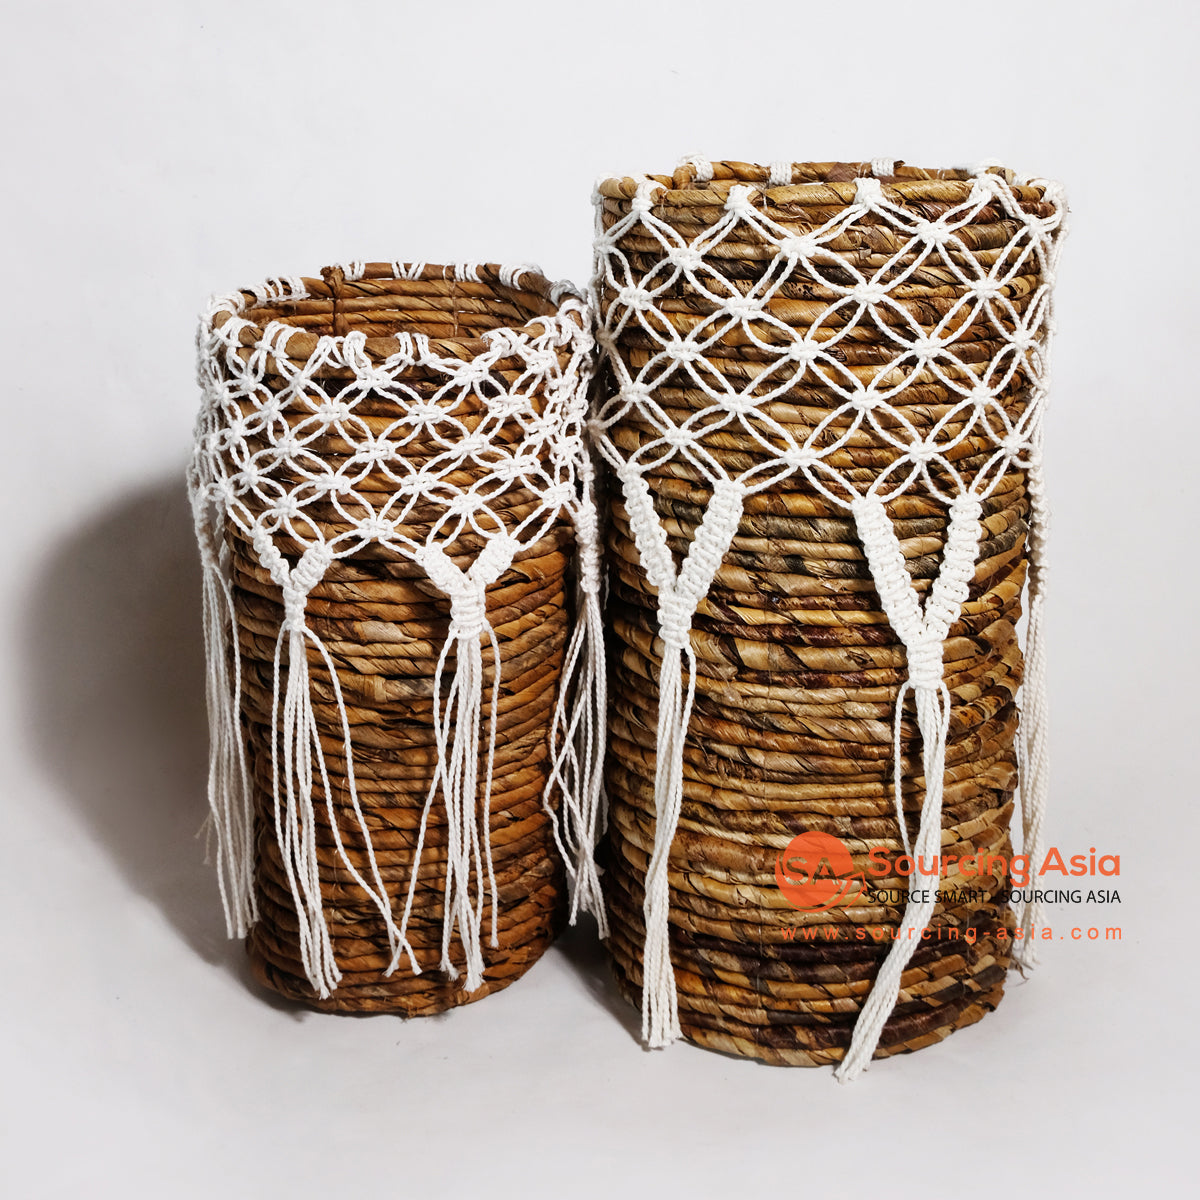 MRC037 SET OF TWO NATURAL BANANA FIBER BASKETS WITH WHITE MACRAME